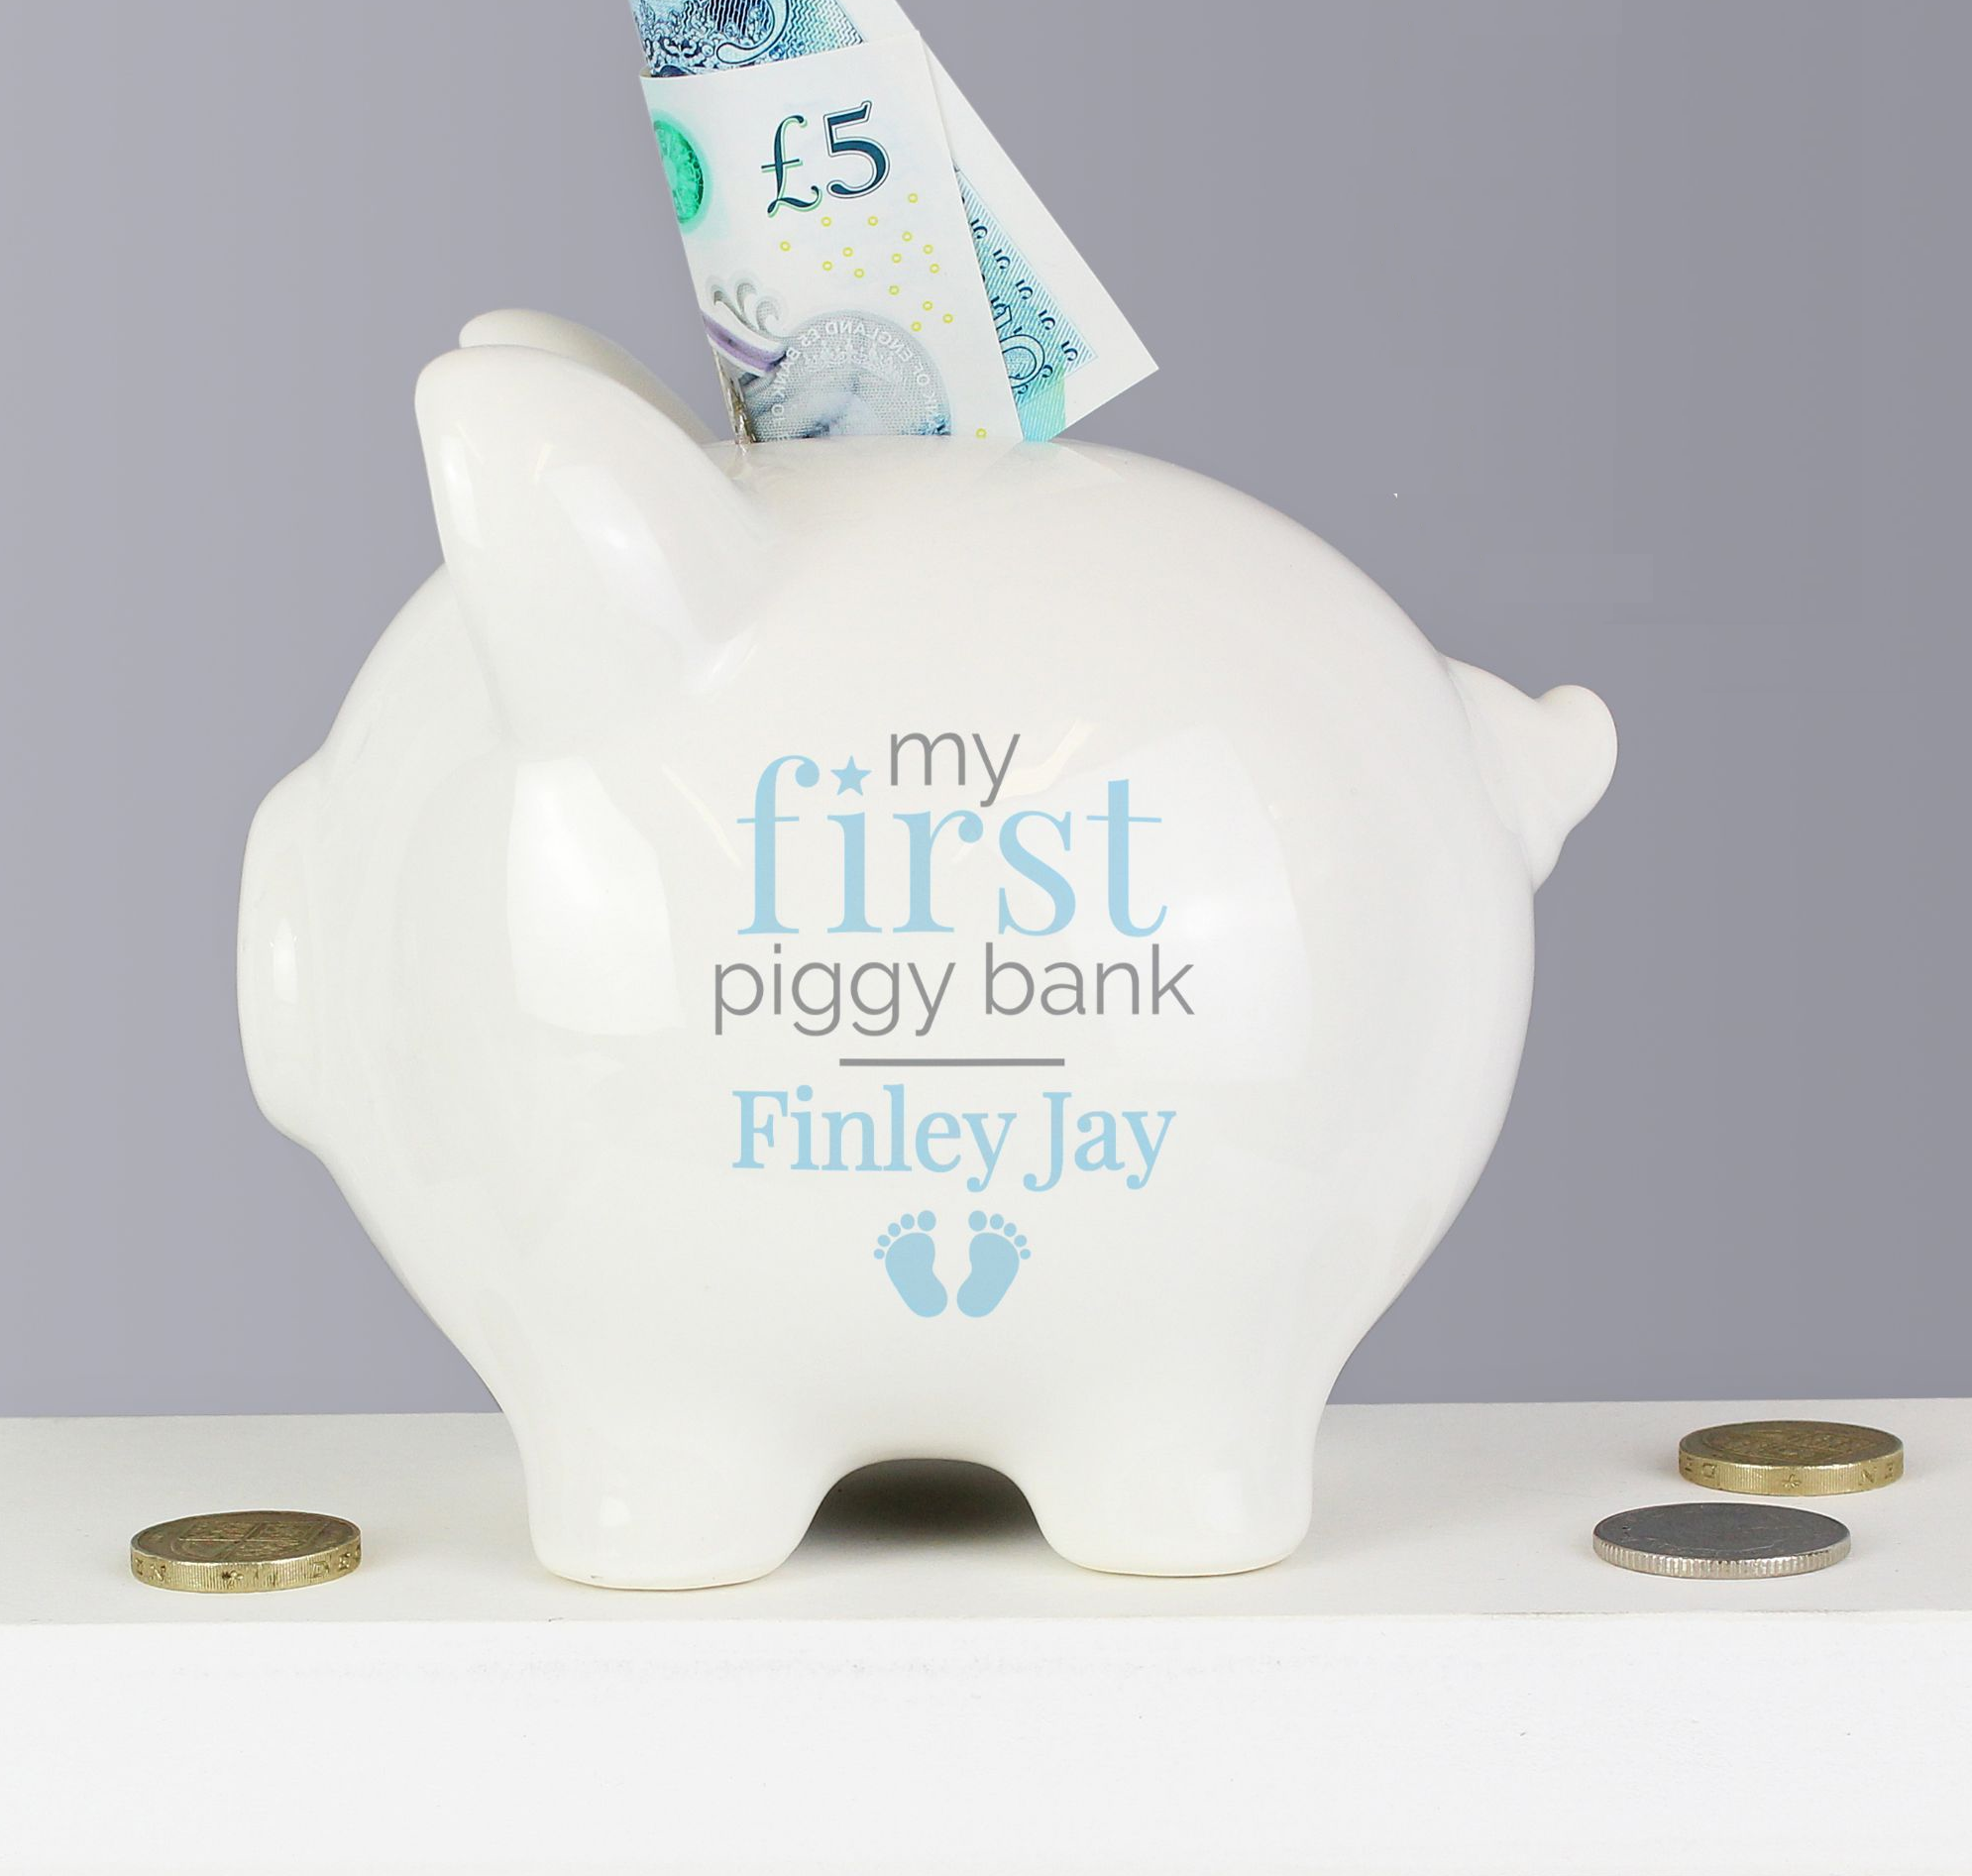 piggy bank cropped